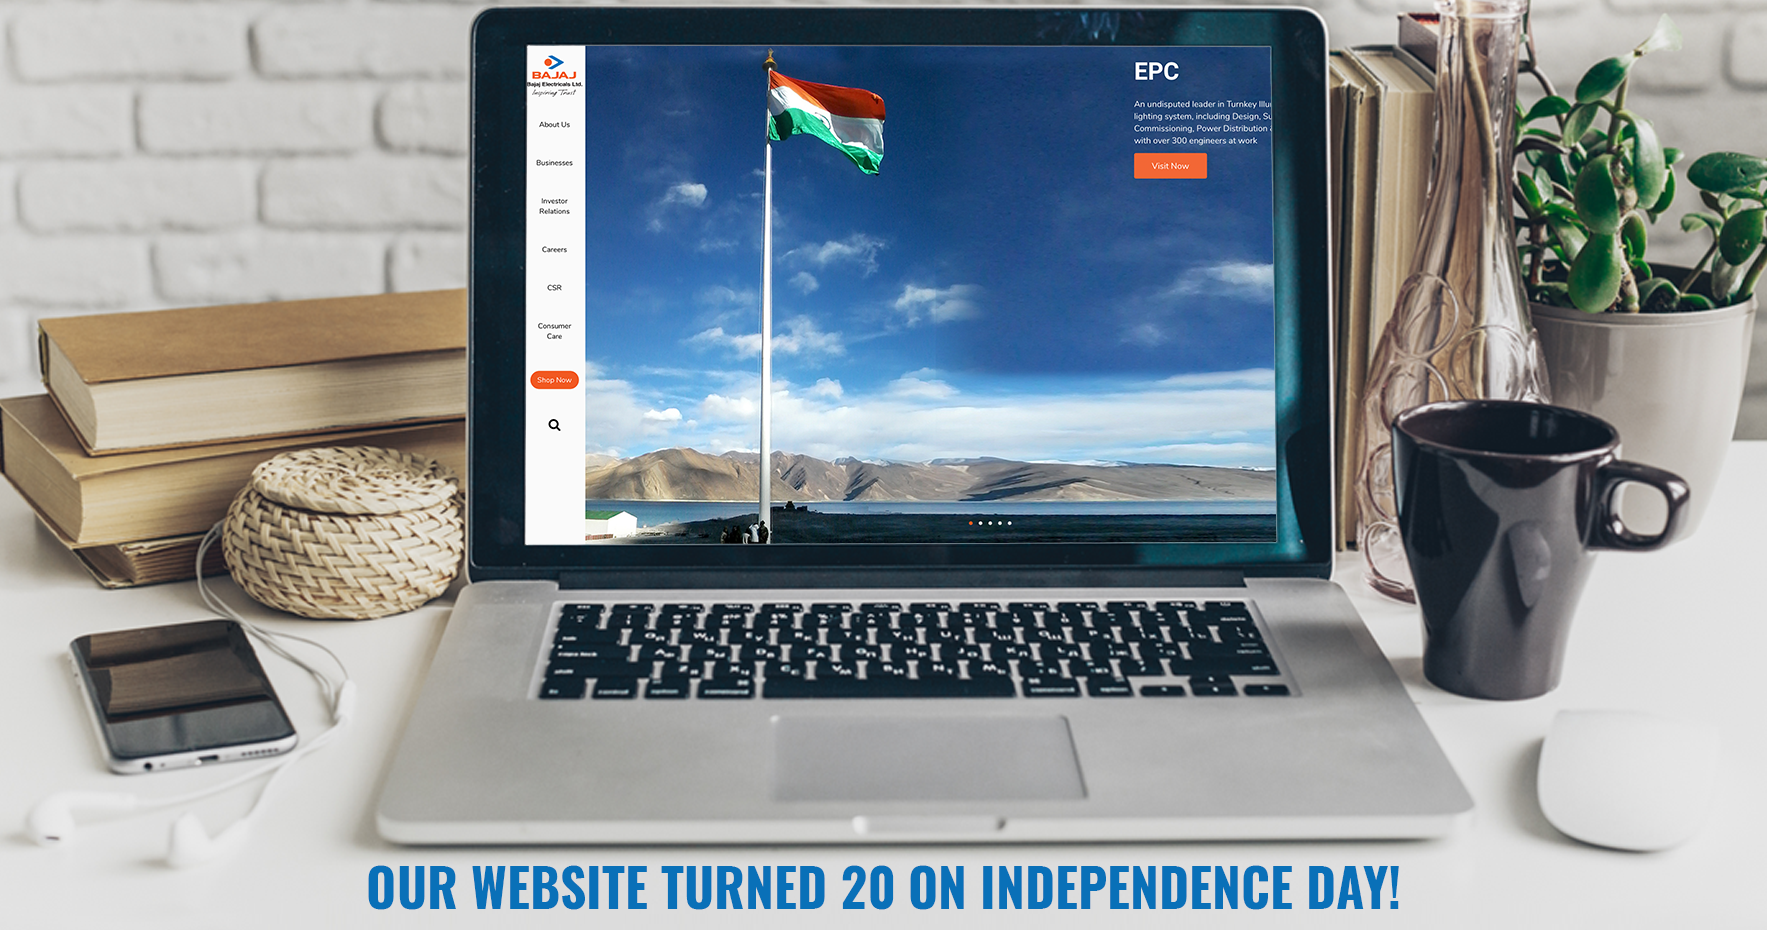 You are currently viewing Bajaj Electricals E-Portal turns 20 this Independence Day, launches new and revamped website